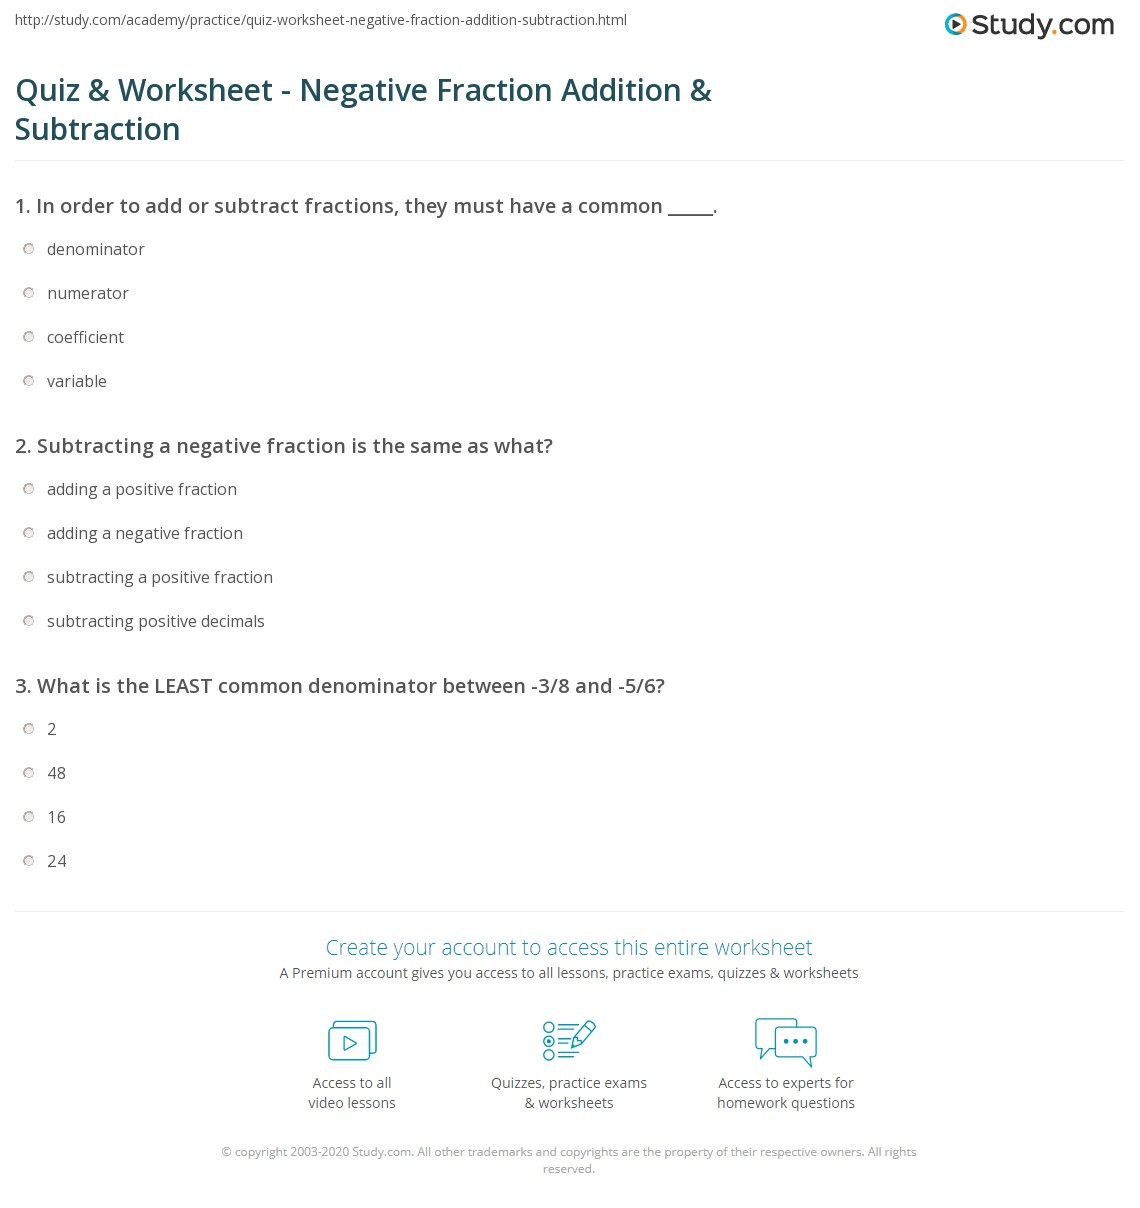 Quiz Worksheet Negative Fraction Addition Subtraction – Adding and Subtracting Improper Fractions Worksheet